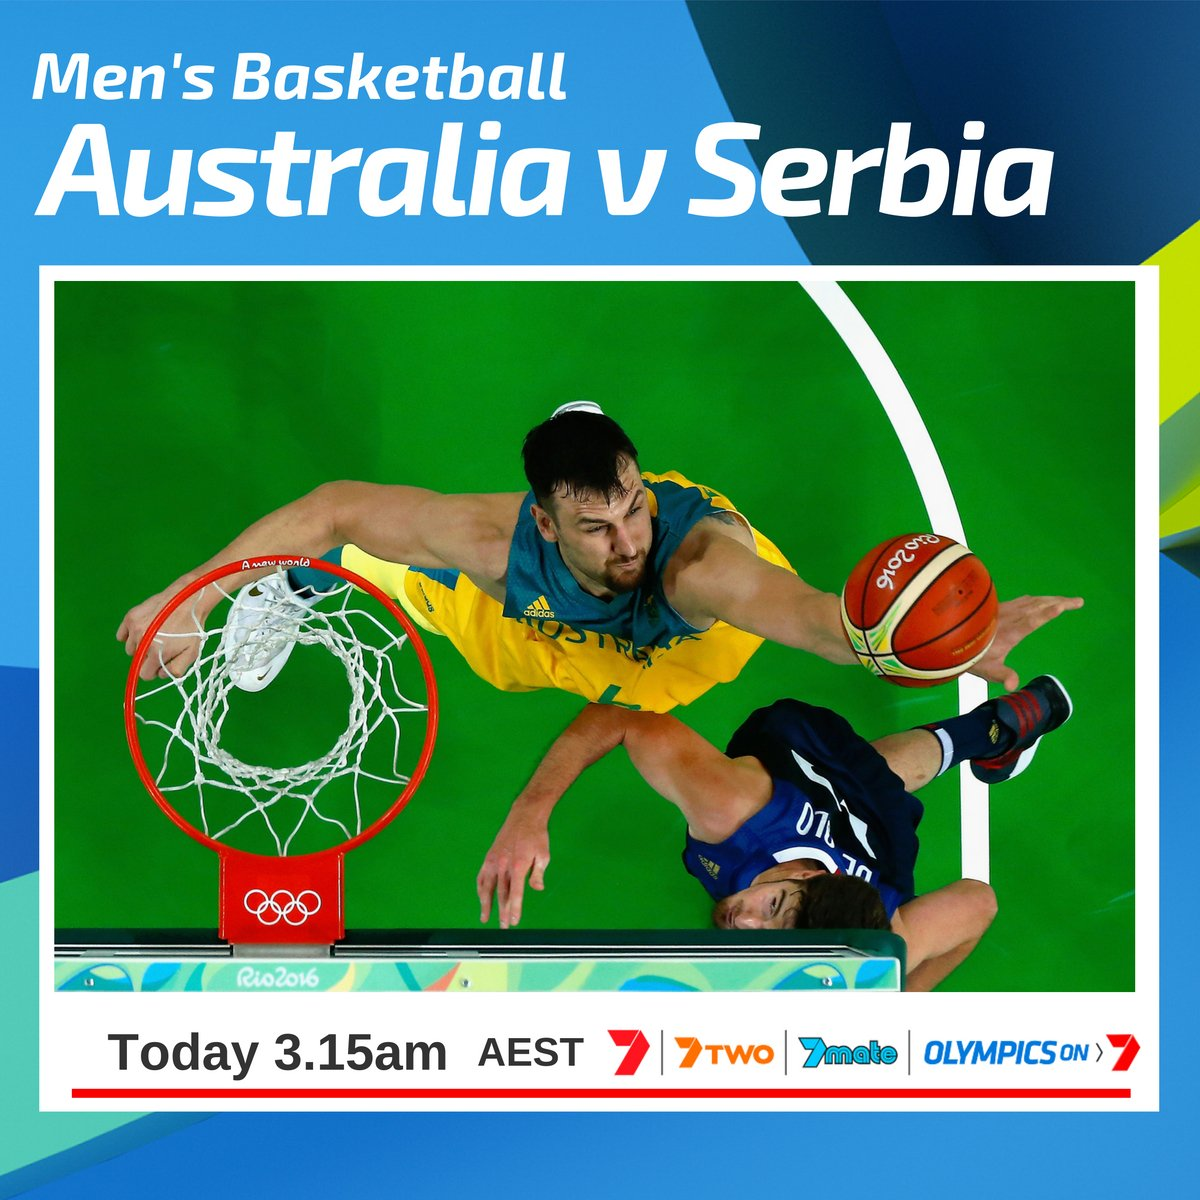 Channel 7 on twitter the boomers take on serbia watch live via channel 7 on twitter the boomers take on serbia watch live via our olympics on 7 app 7olympics publicscrutiny Images